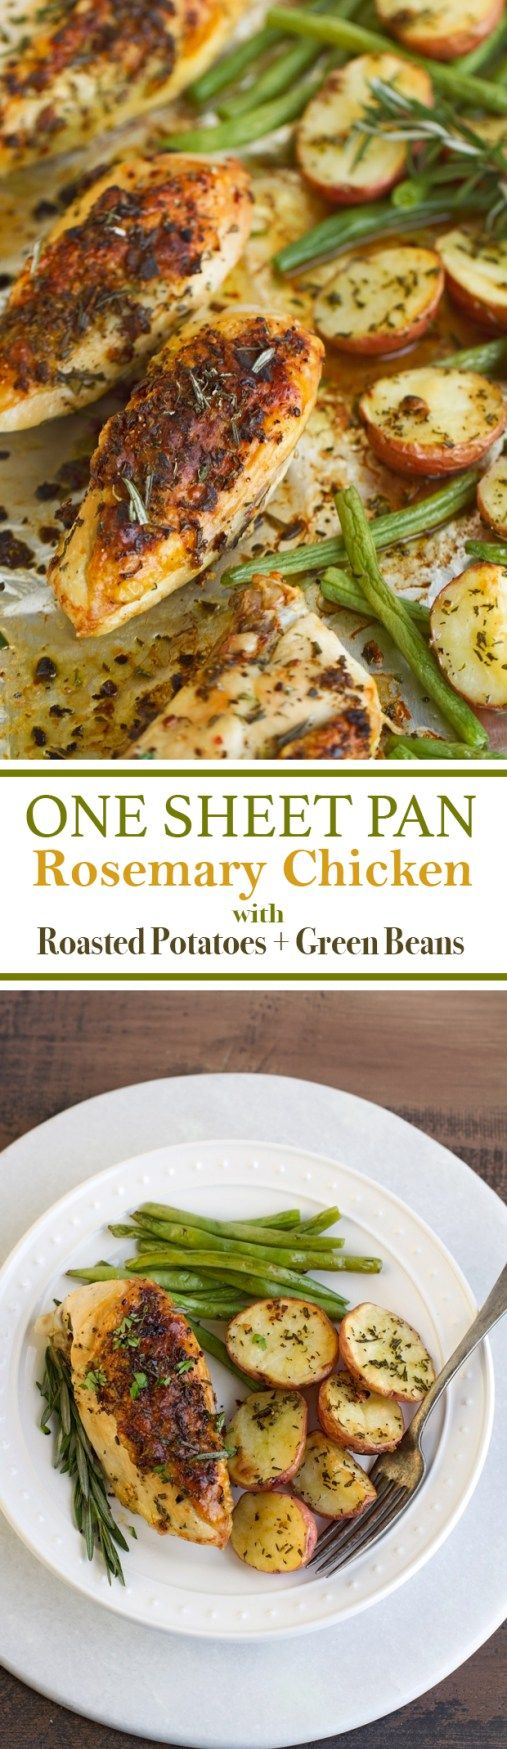 One Sheet Pan Rosemary Chicken + Potatoes & Green Beans - Substitute butter with olive oil for Whole 30